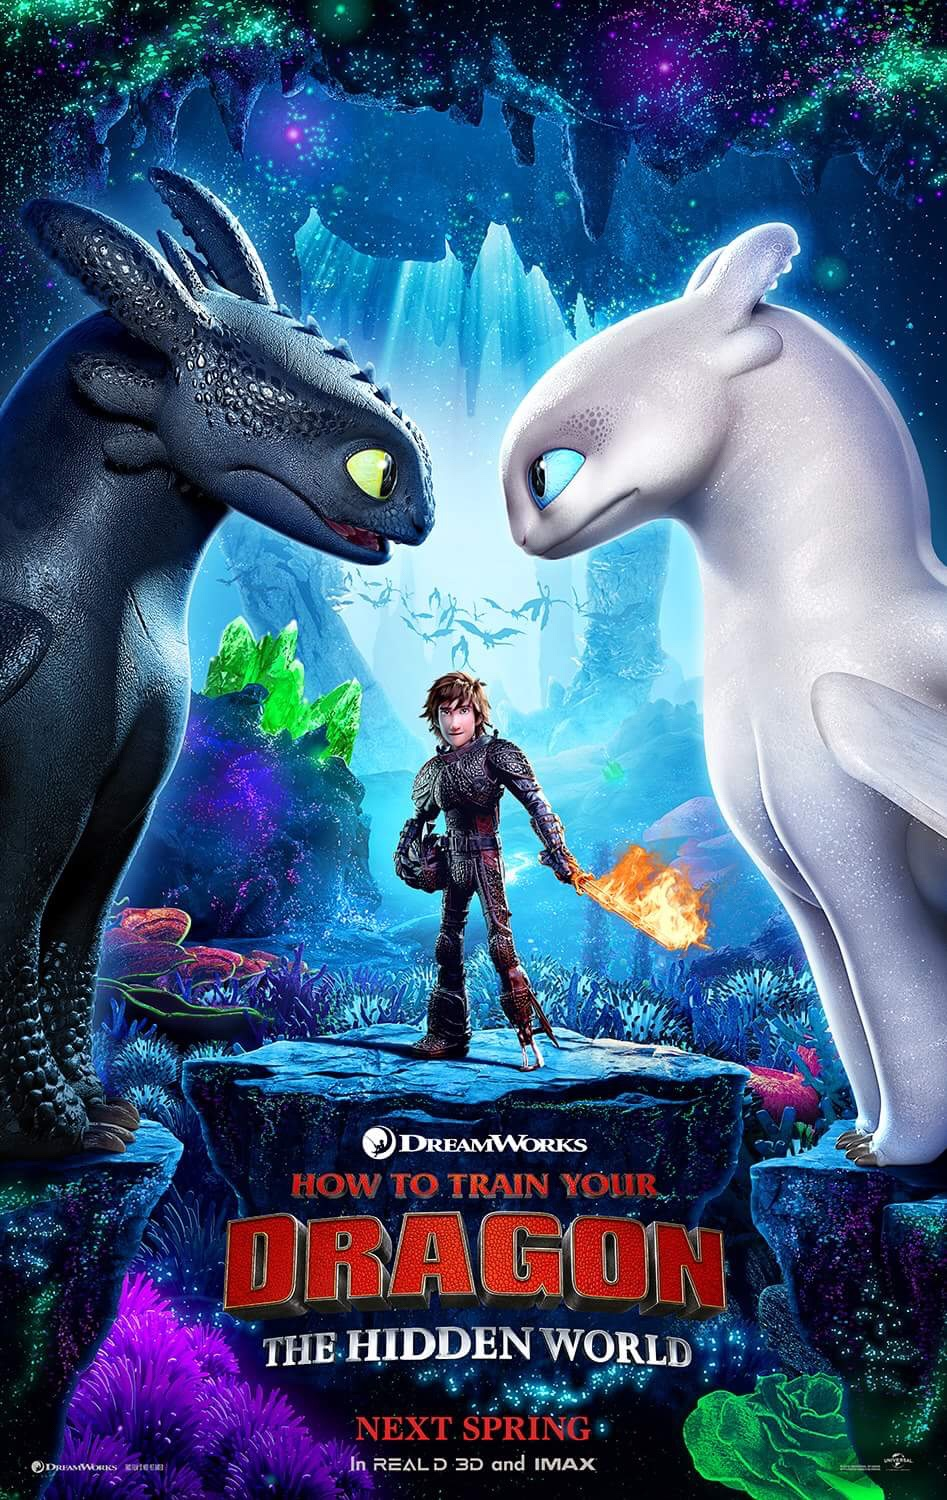 Behind the thrills how to train your dragon 3 gets first poster its been a while since weve heard too much from the third installment in the hit series how to train your dragon but things are picking up quick ccuart Choice Image